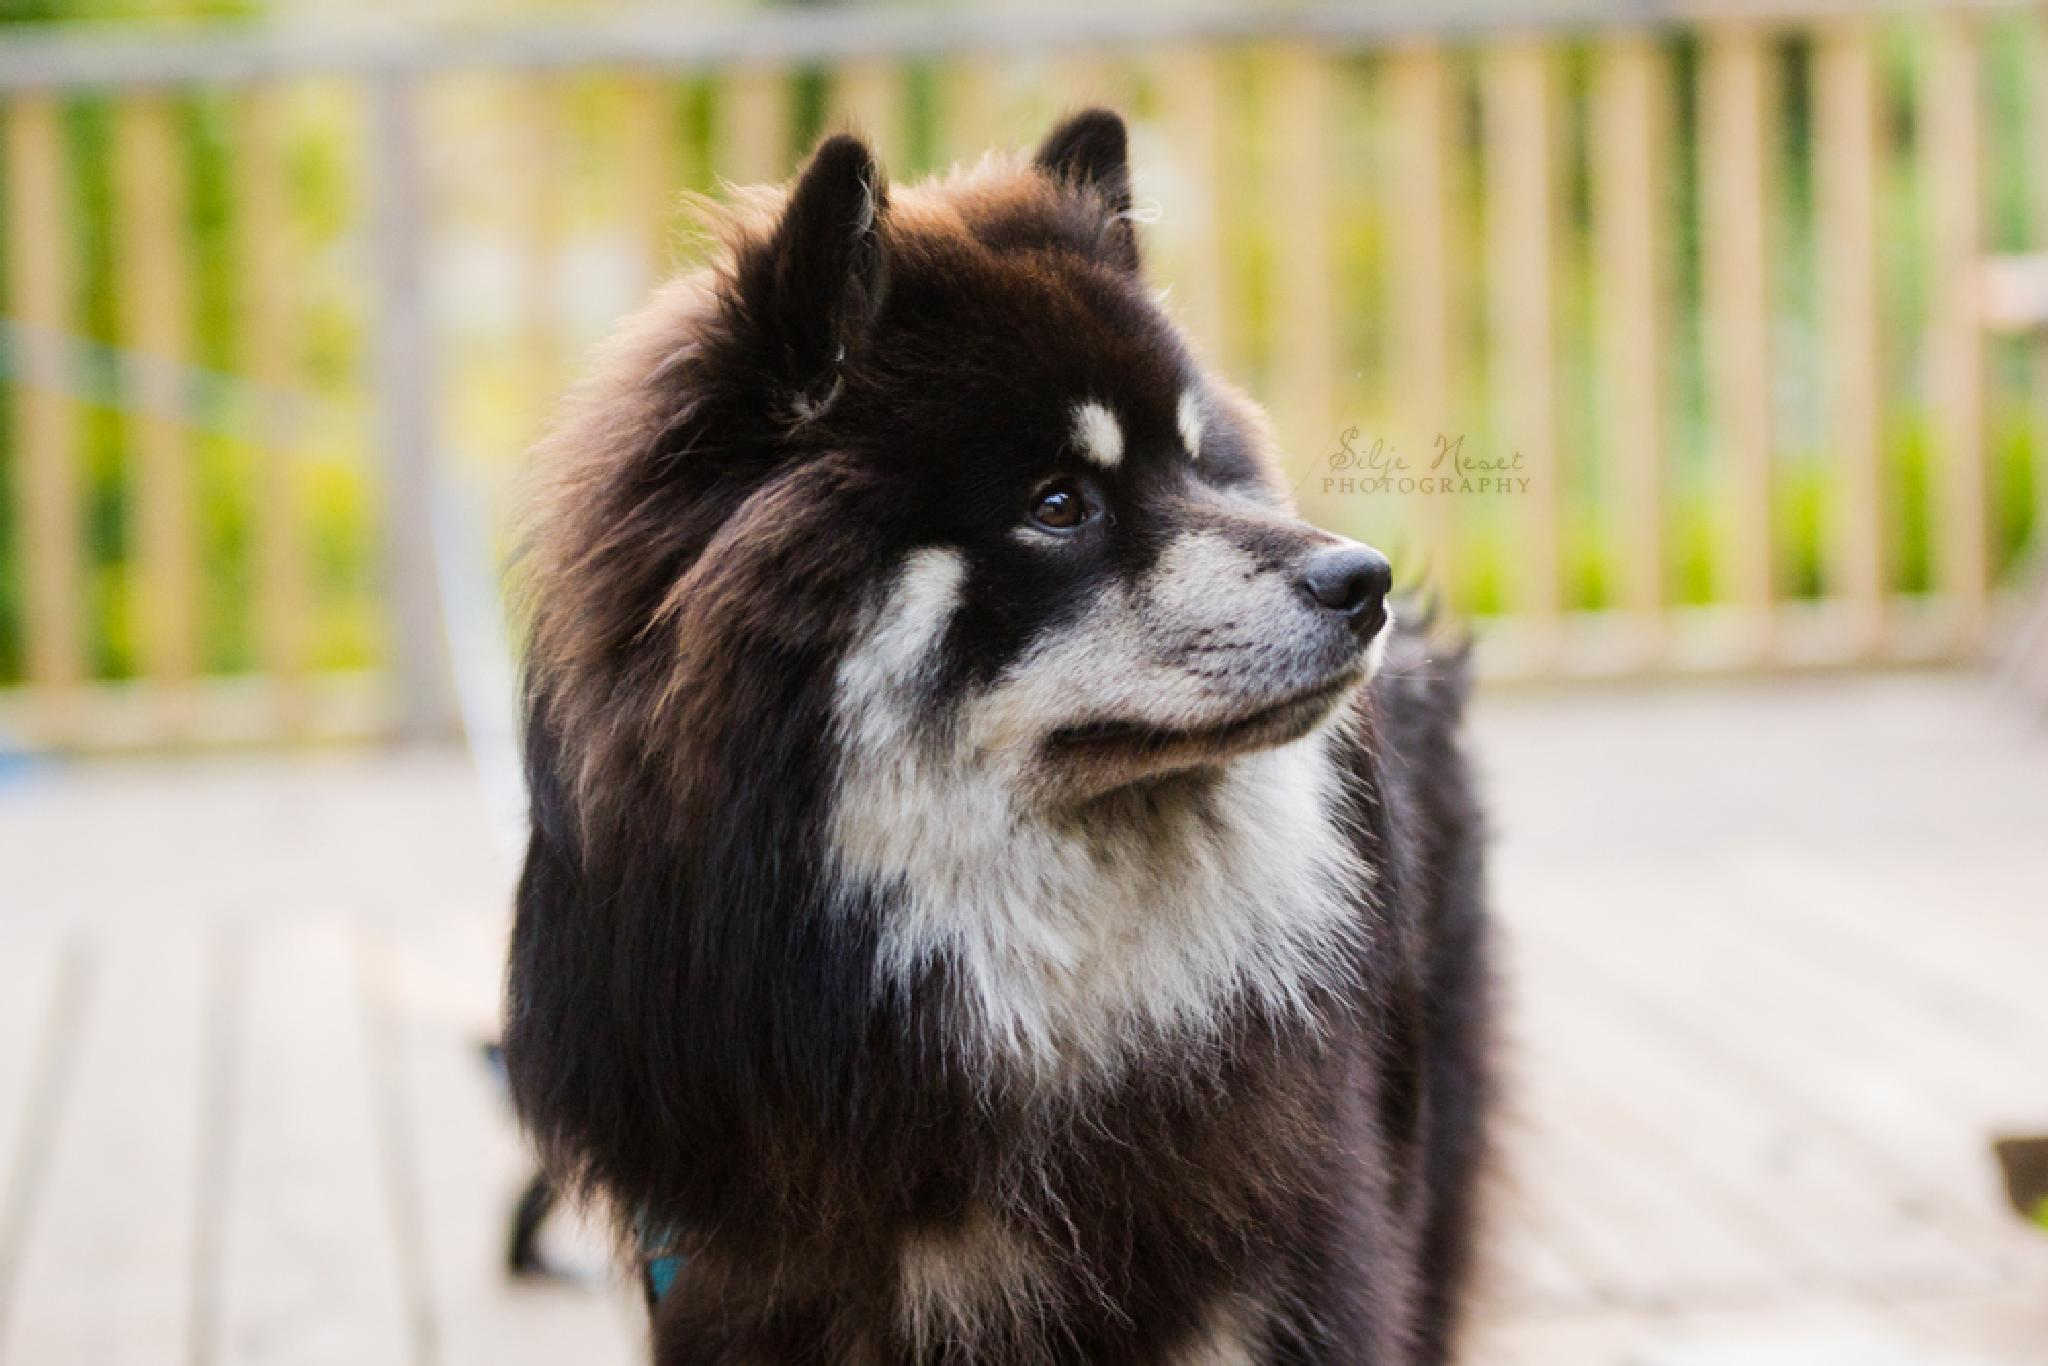 Mio the finnish lapphund by Silje Neset